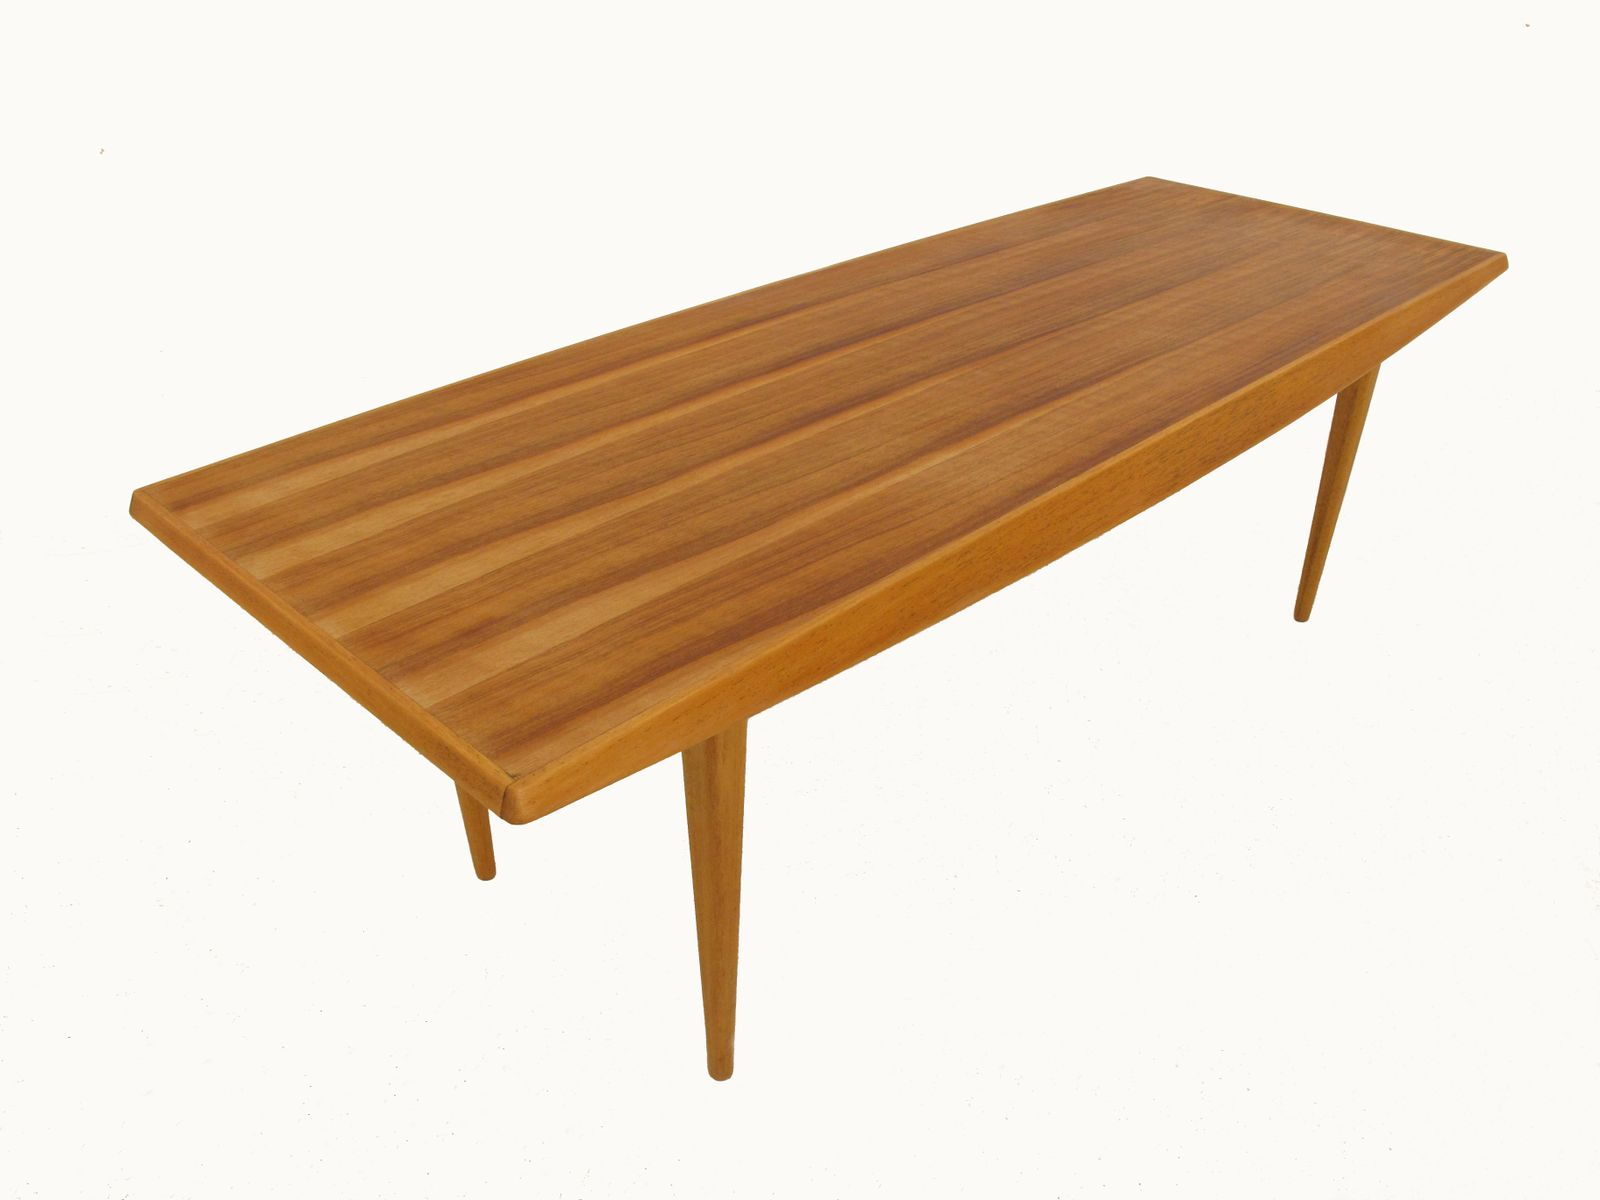 Gordon Russell Coffee Table Coffee Table By Trevor Chinn For Gordon Russell 1950s For Sale At